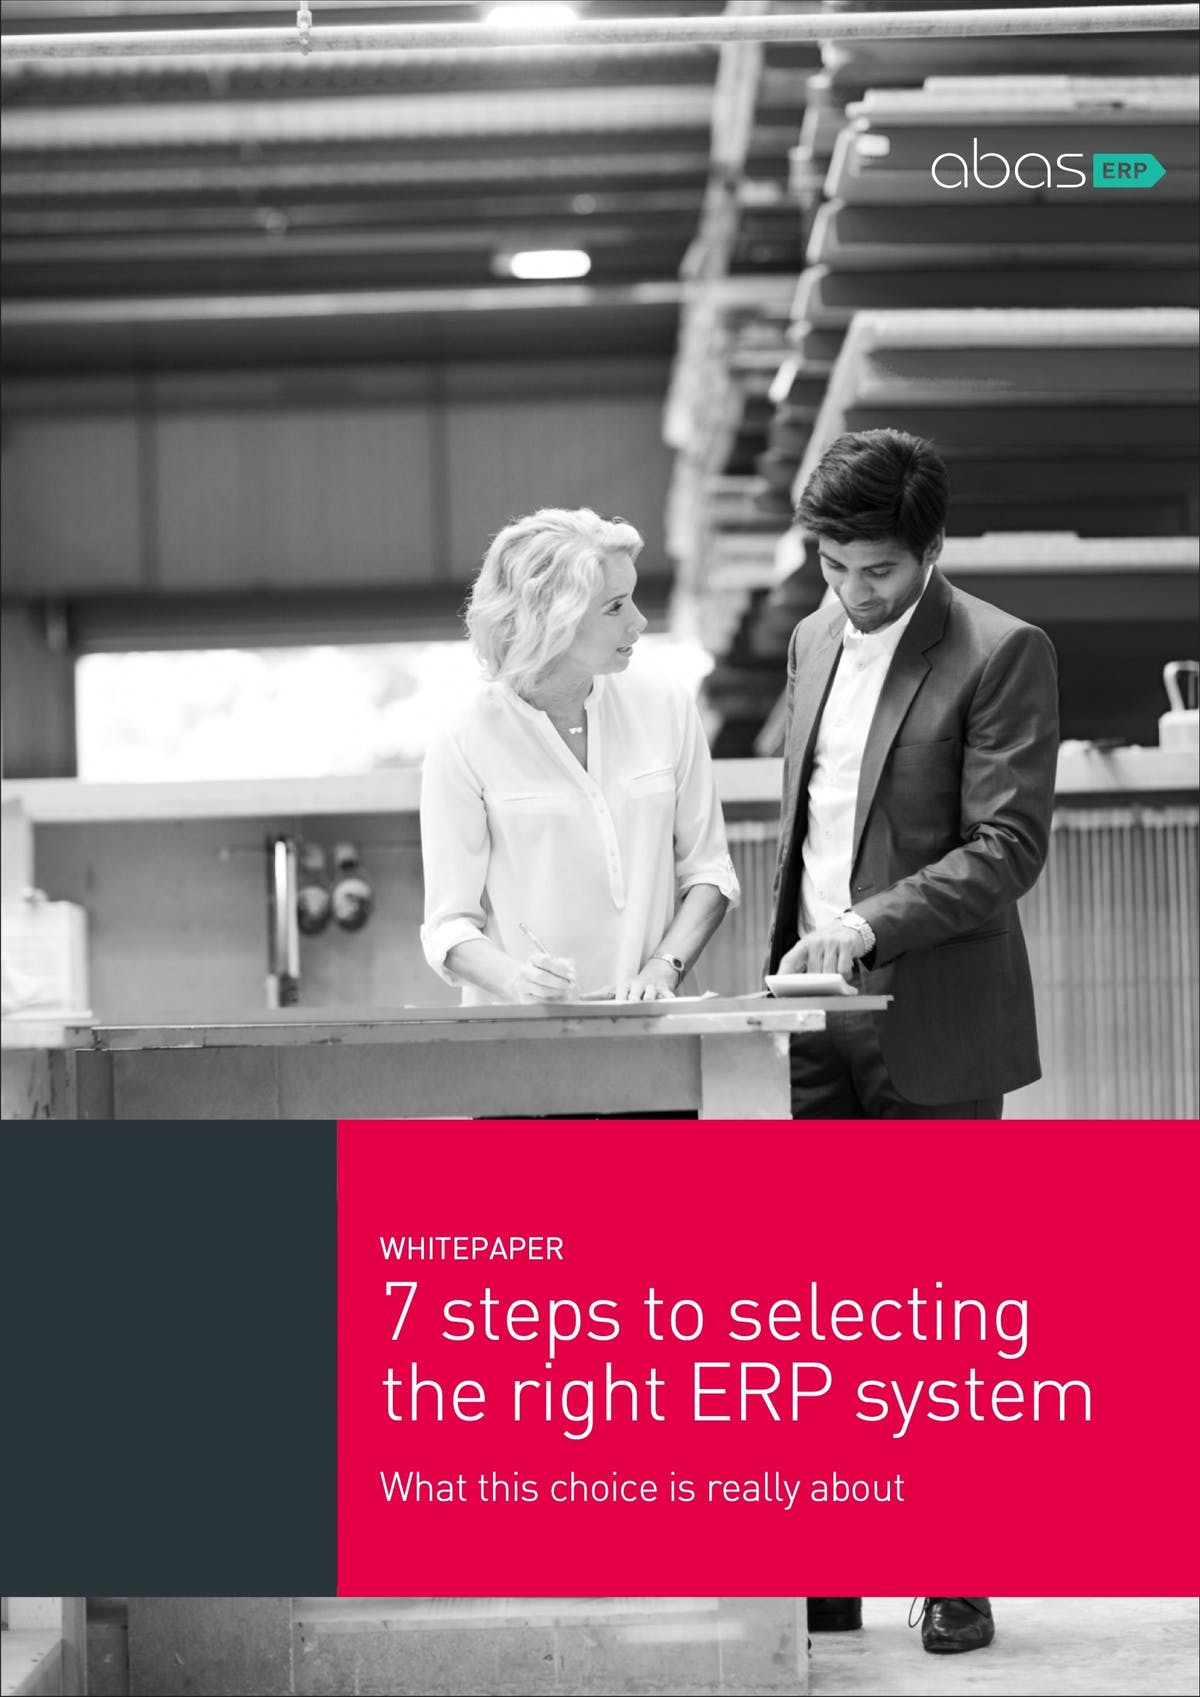 abas ERP White Paper - 7 Steps to Selecting the Right ERP System